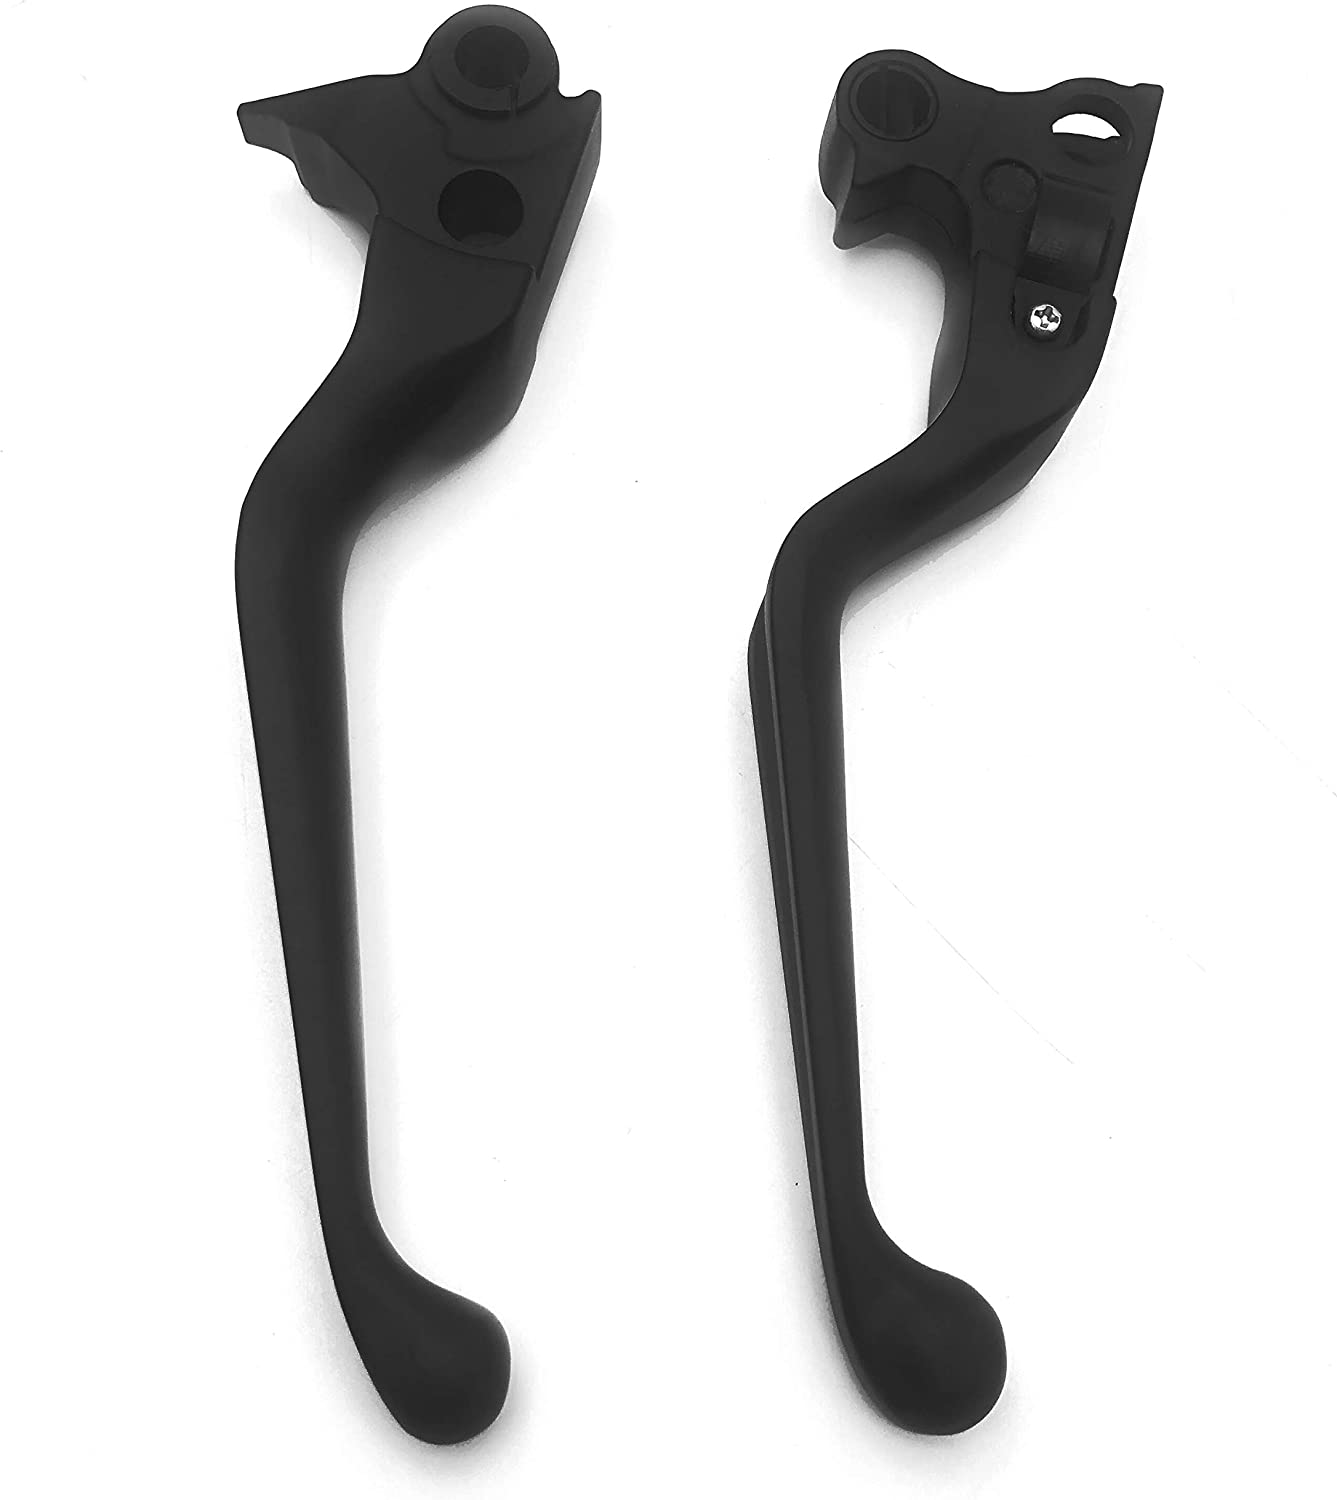 HTTMT MT241-027 Motorcycle Parts Chromed Brake Clutch Hand Levers Compatible with 1996-2003 XL//1996-2007 Dyna Touring// 1996-2007 Softail //2011-2014 Softail models